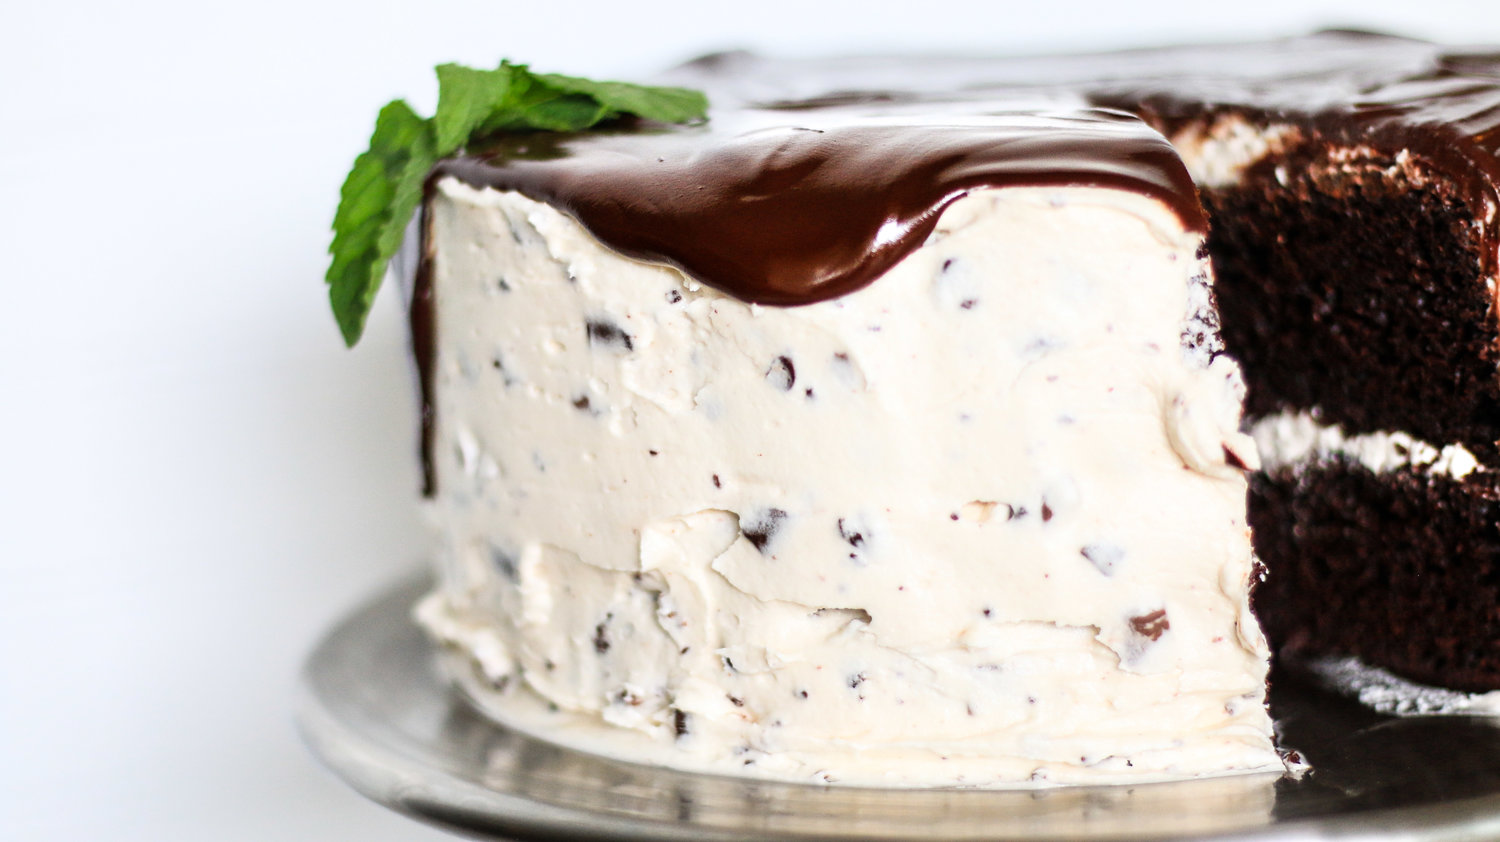 Layered Chocolate Cake with Mint Buttercream Icing